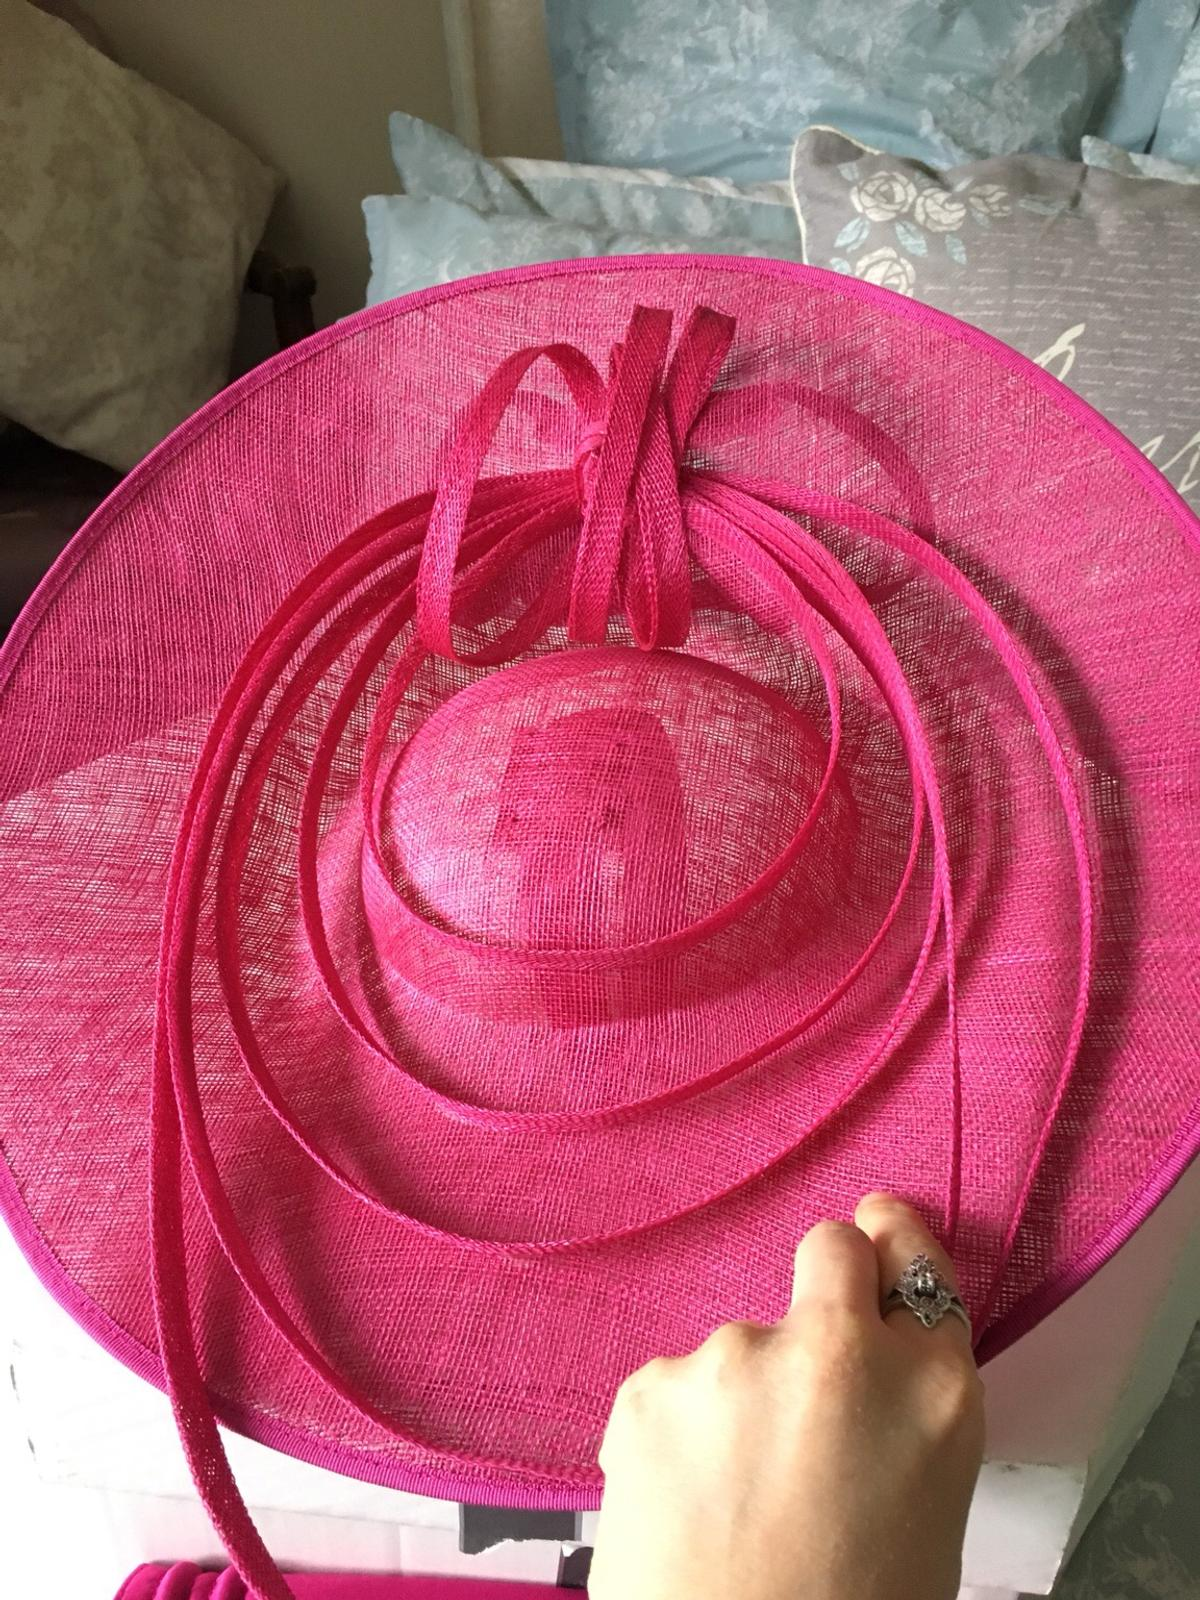 Matching Large Saucer Fascinator Hat And Bag In Sm7 Banstead For 29 00 For Sale Shpock